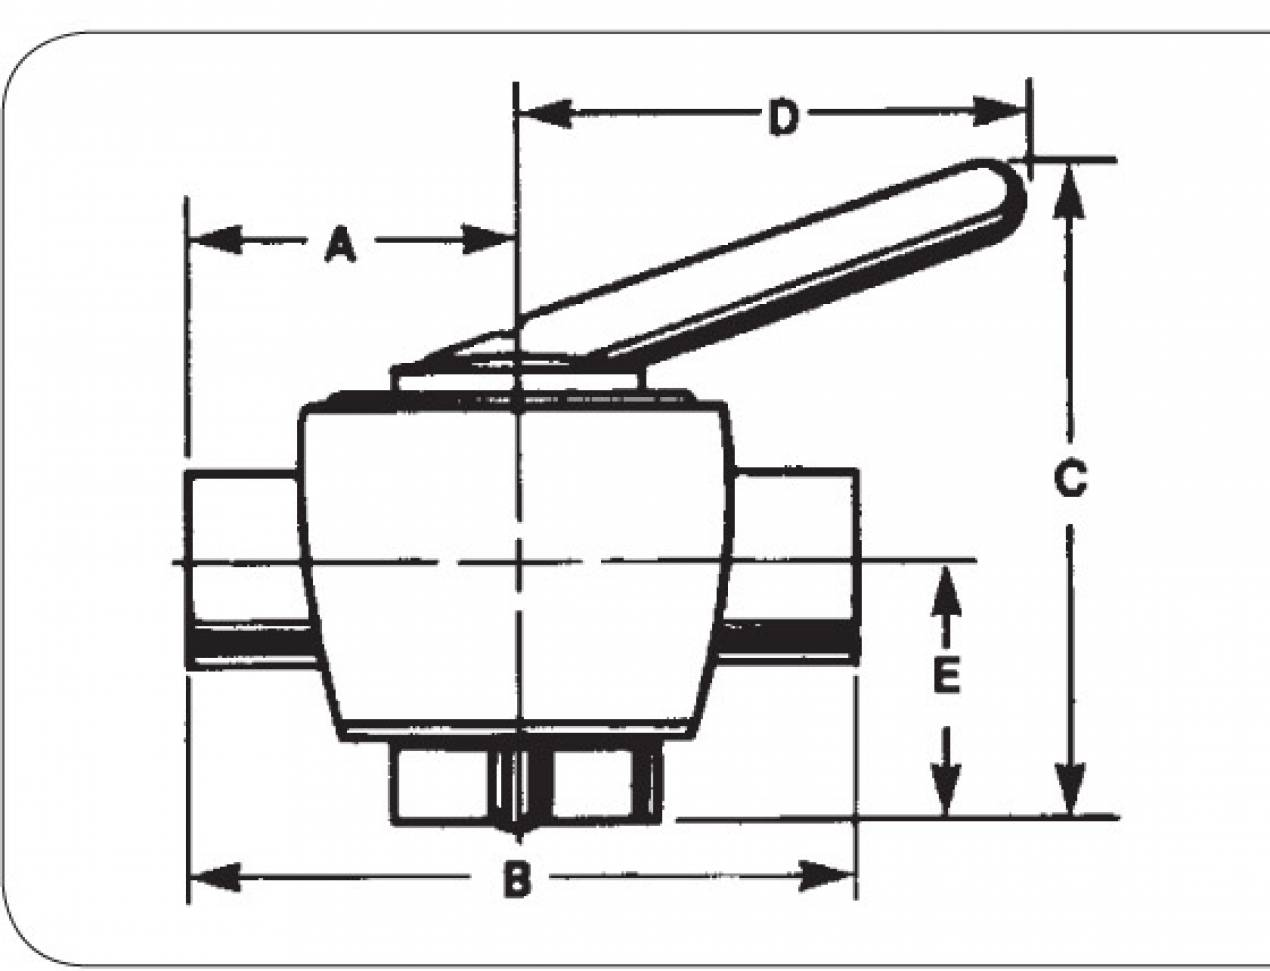 4400 Lb Lift Gate Wiring Diagram Libraries Tommy Auto Electrical Diagramrelated With